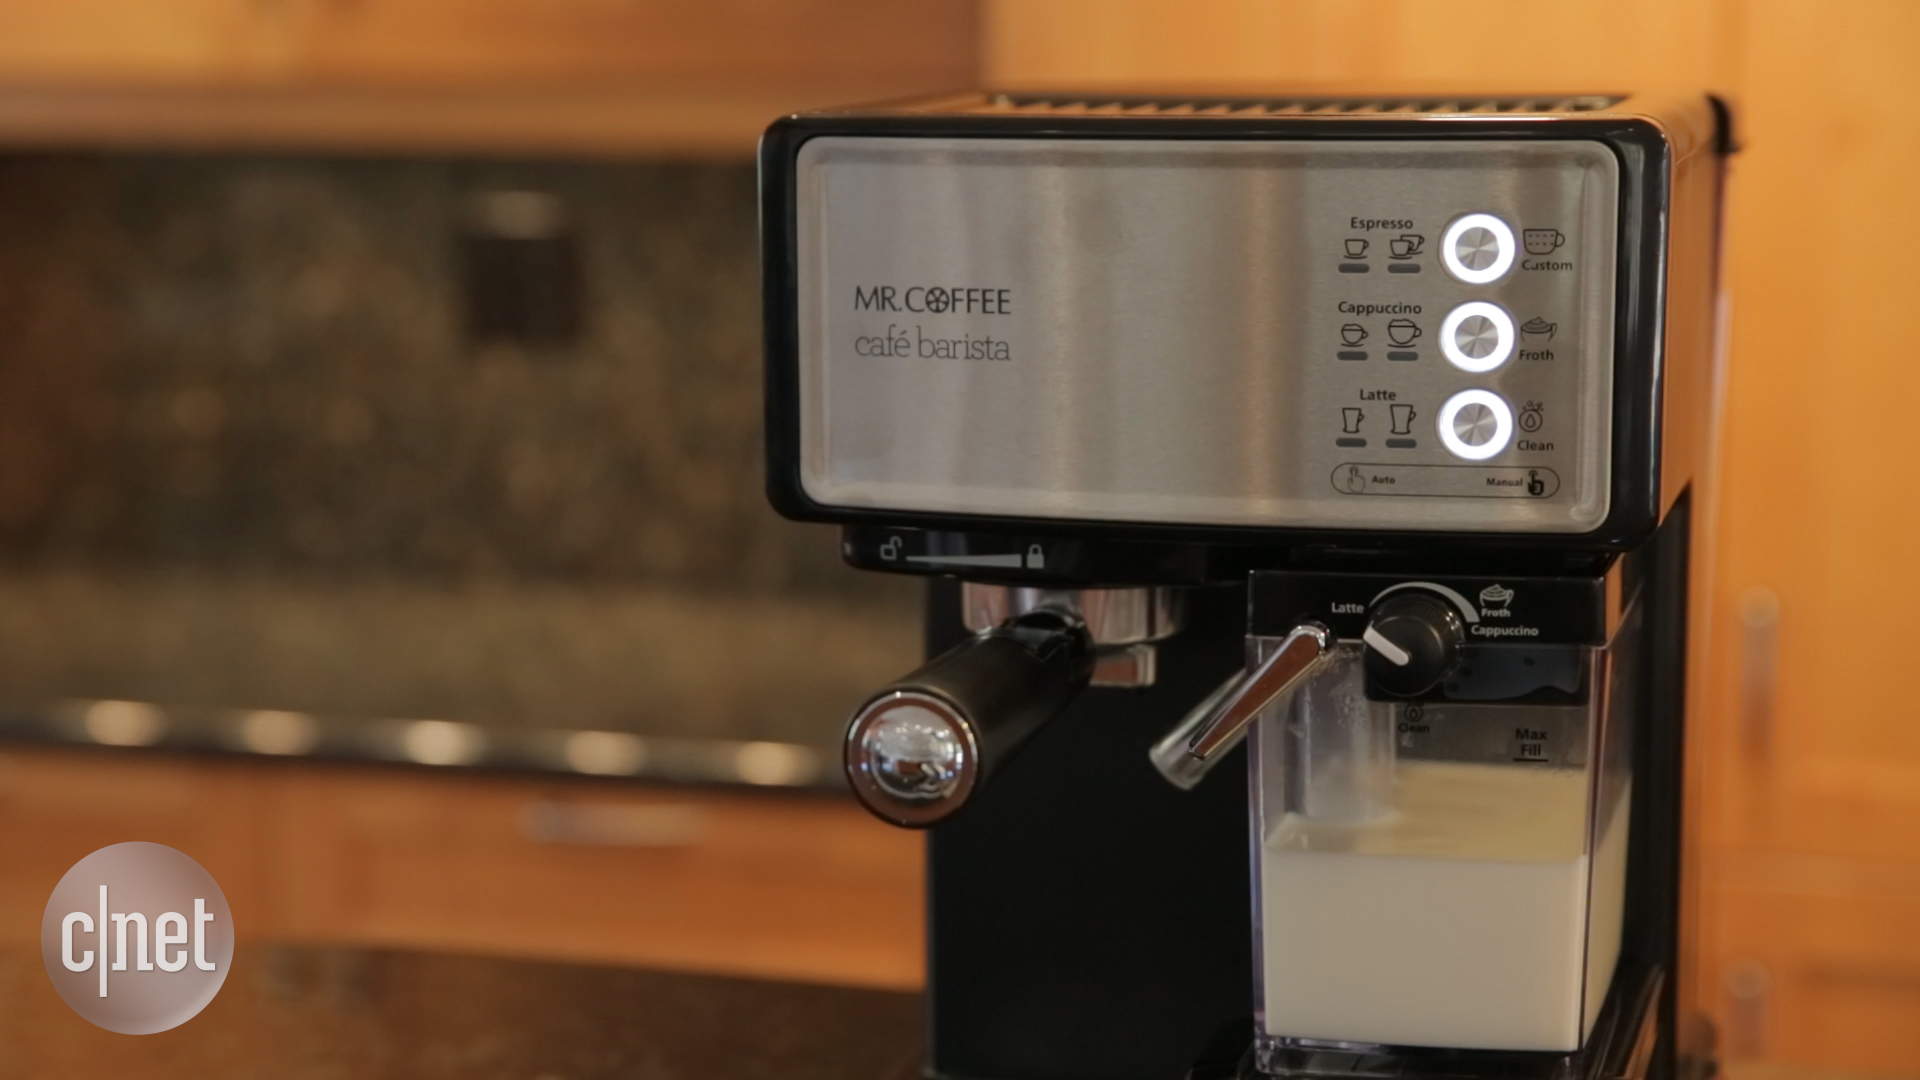 Video: This Mr. Coffee makes cafe drinks in robotic fashion